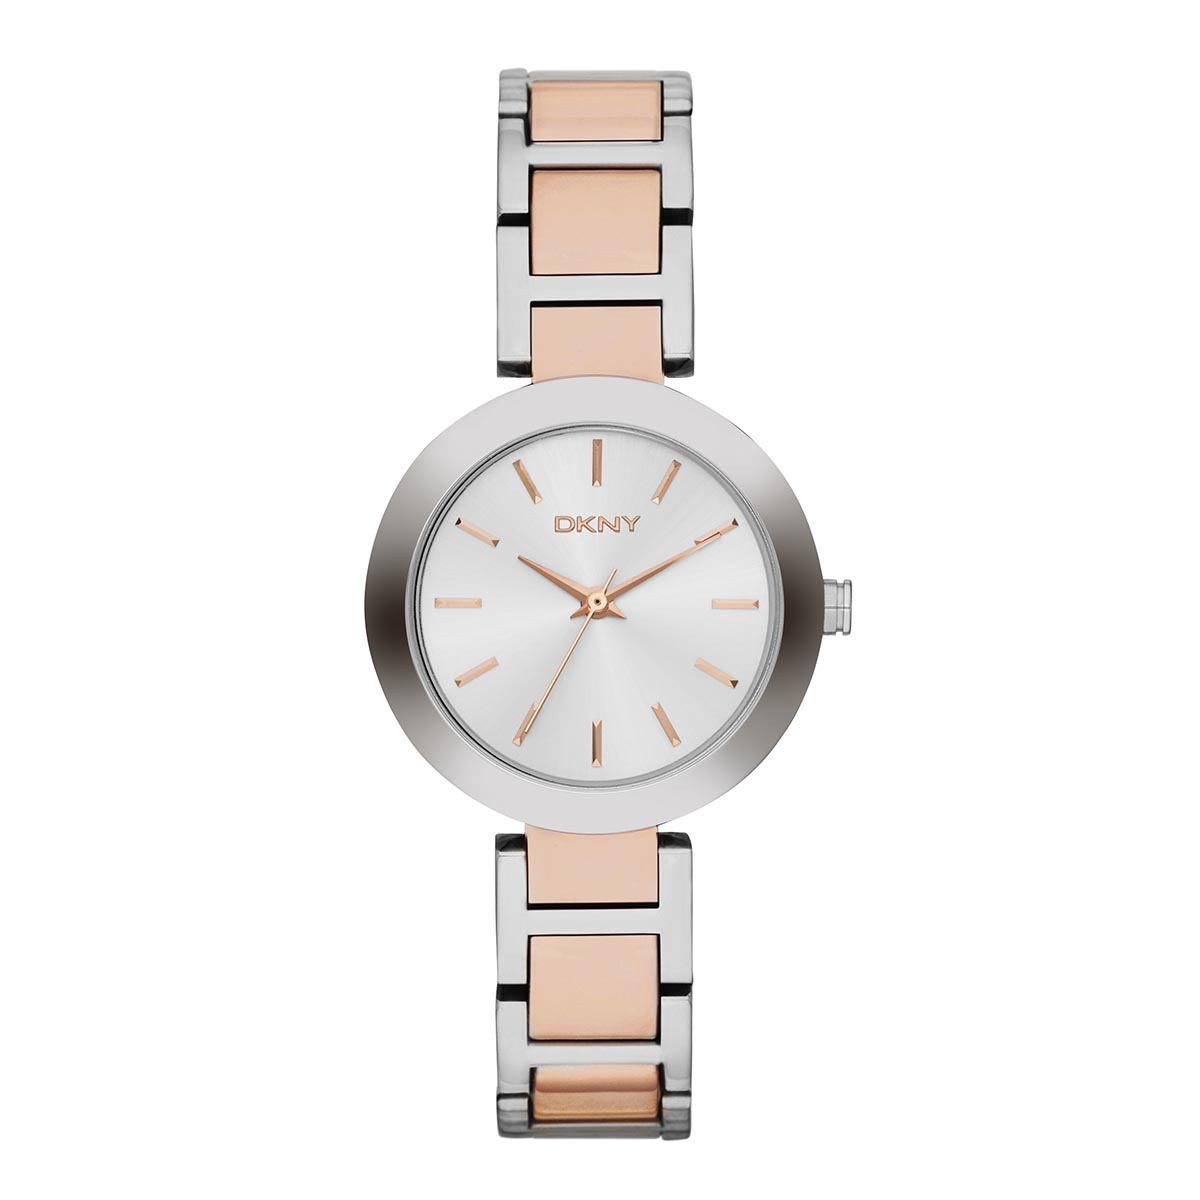 Laikrodis DKNY - Stanhope NY2402 2T Silver/Rose/Silver/Steel